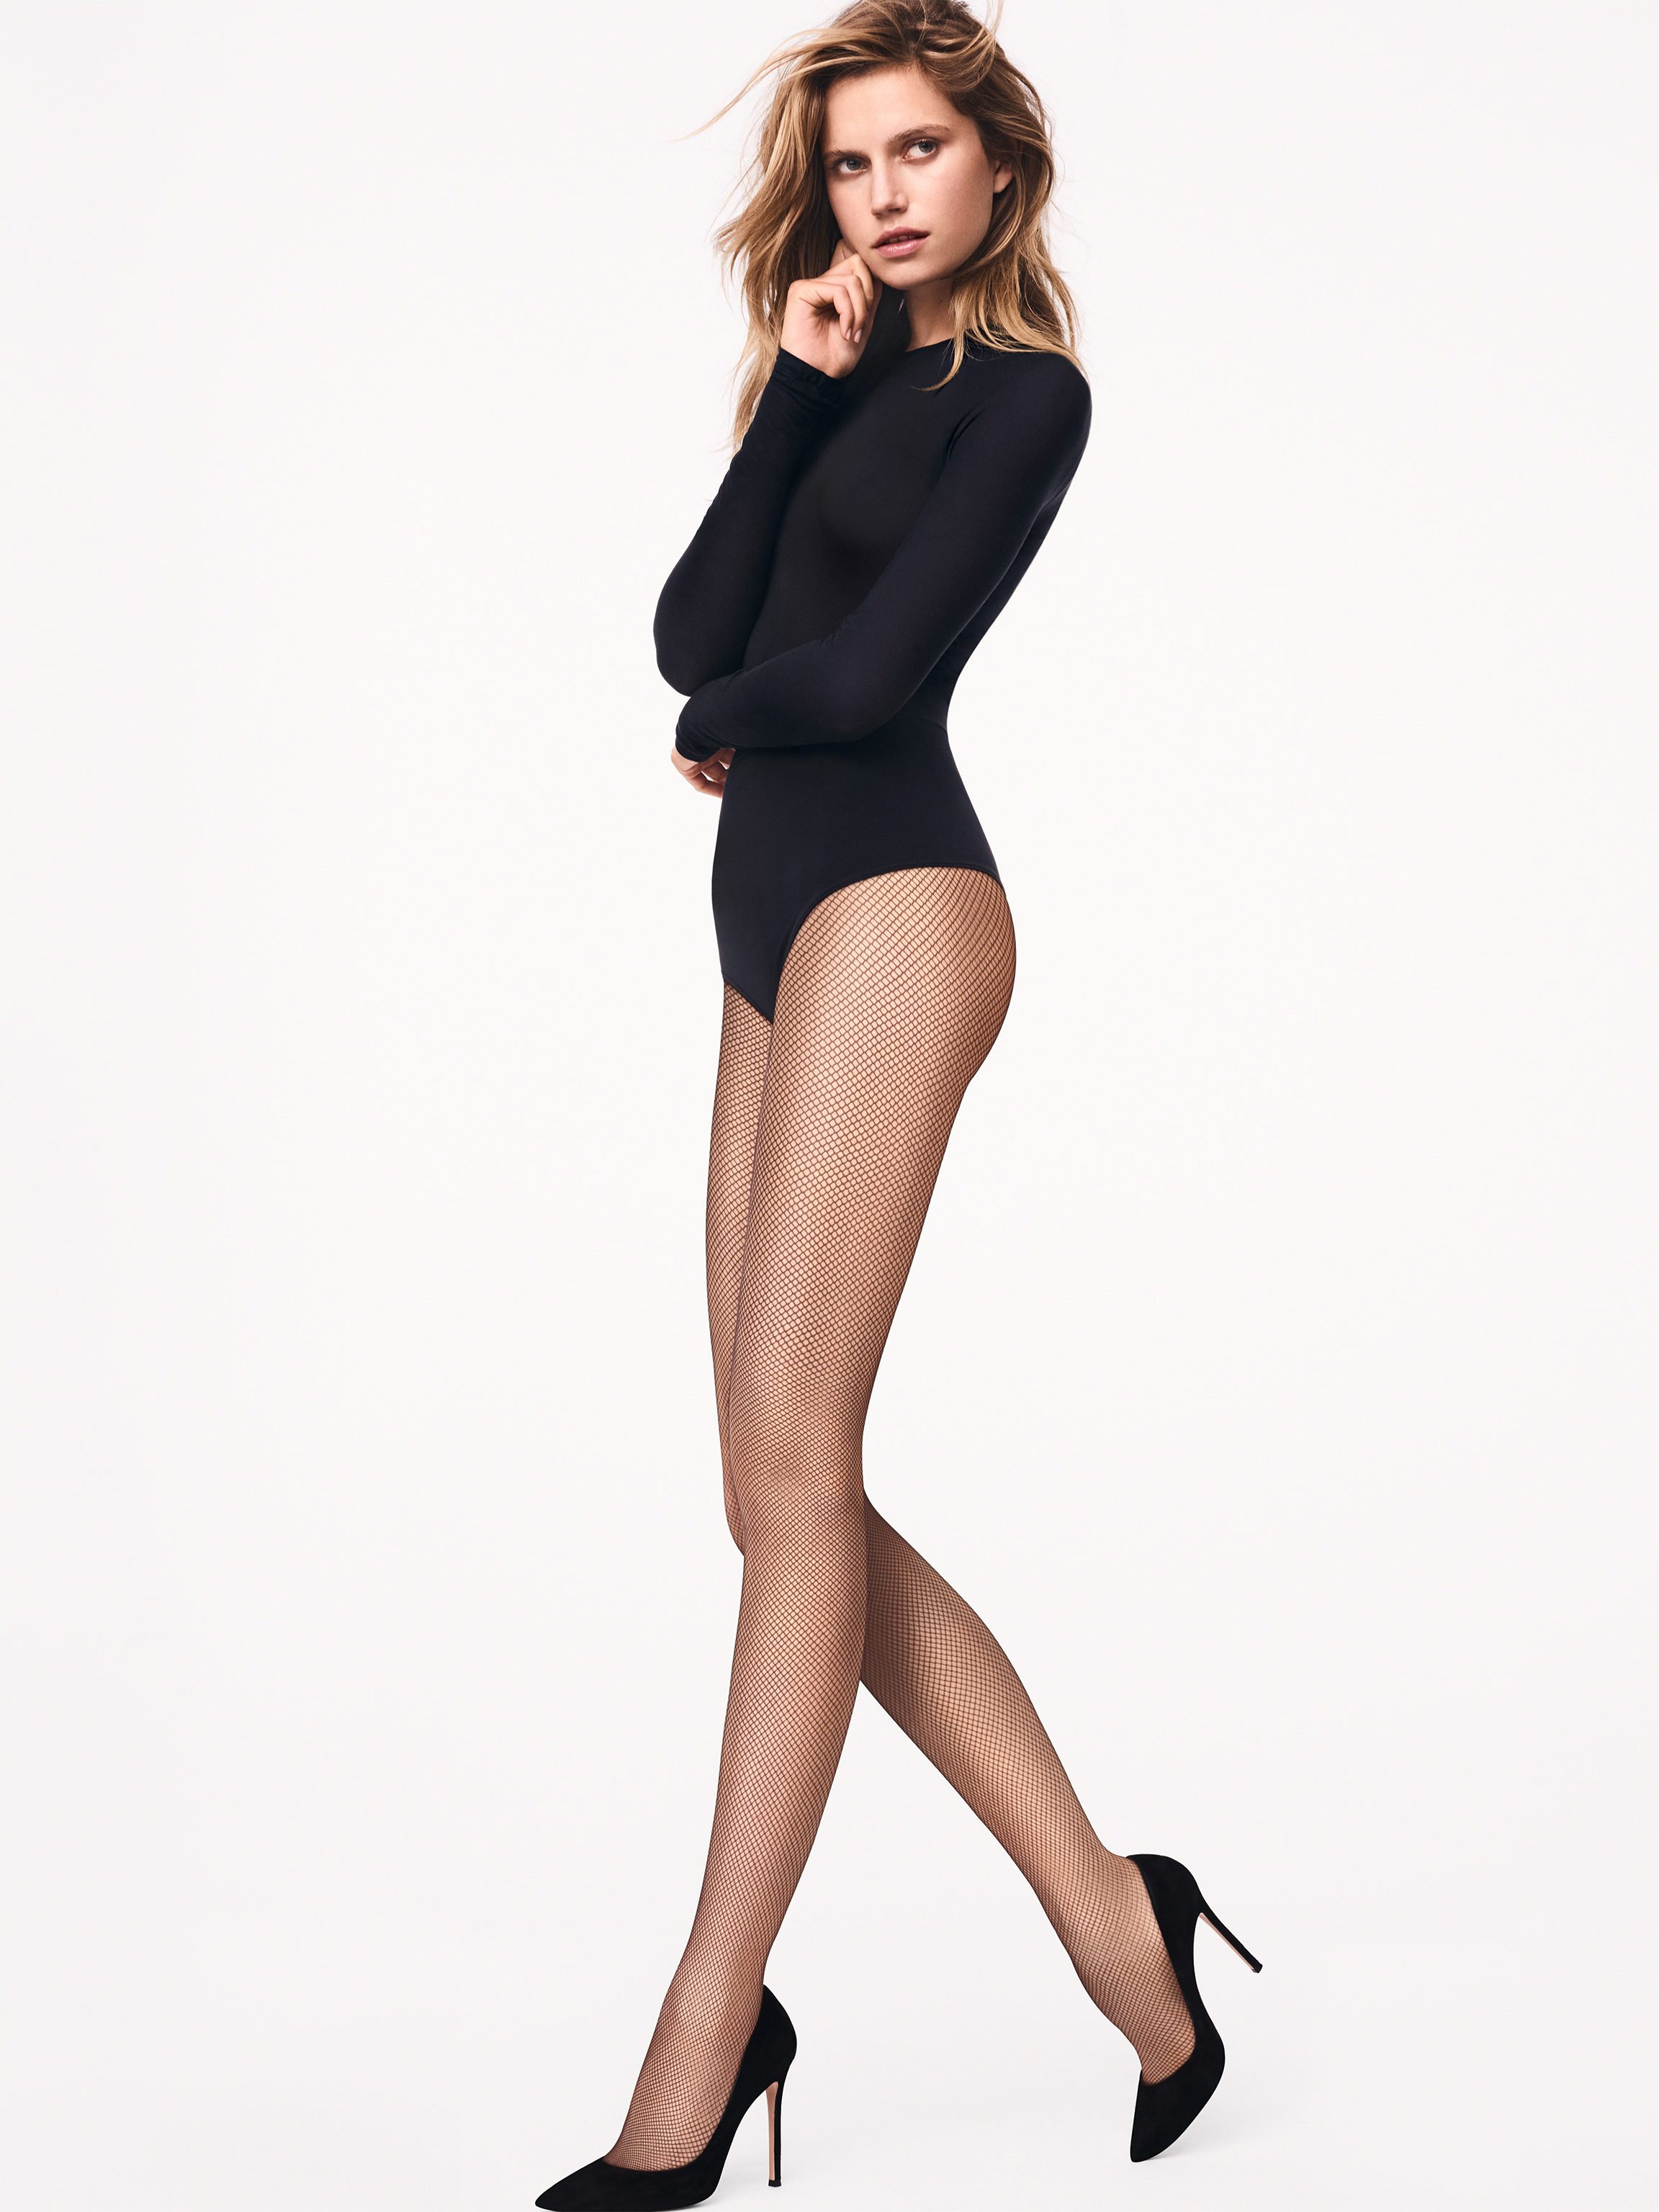 Twenties Tights - ristretto - S | Sportbekleidung > Sporthosen > Tights | Wolford